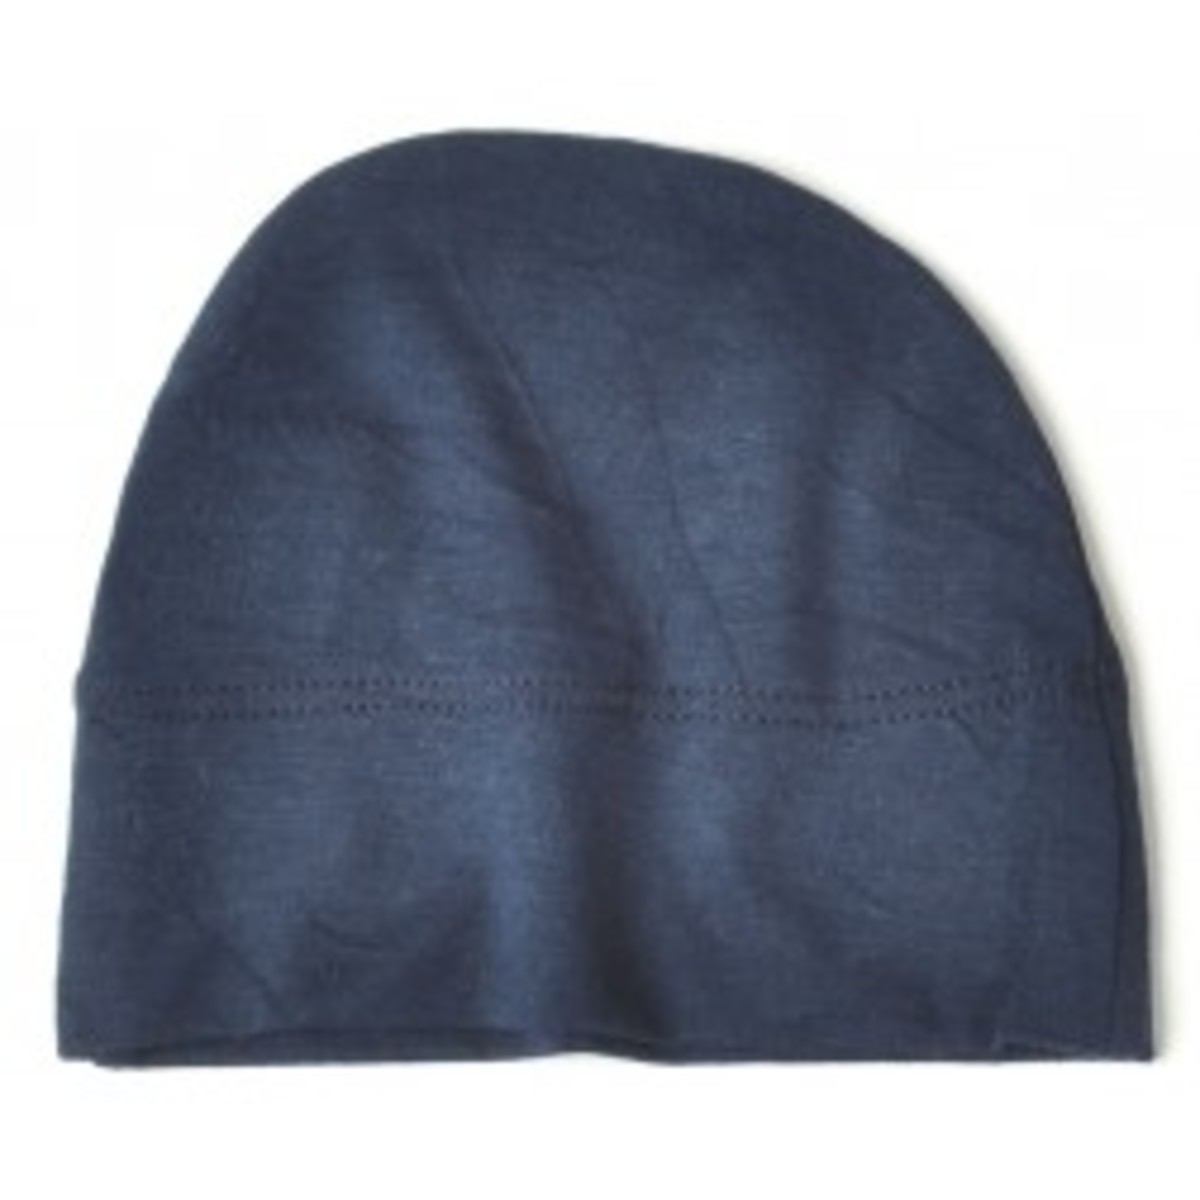 estla_hat_dark_blue_1